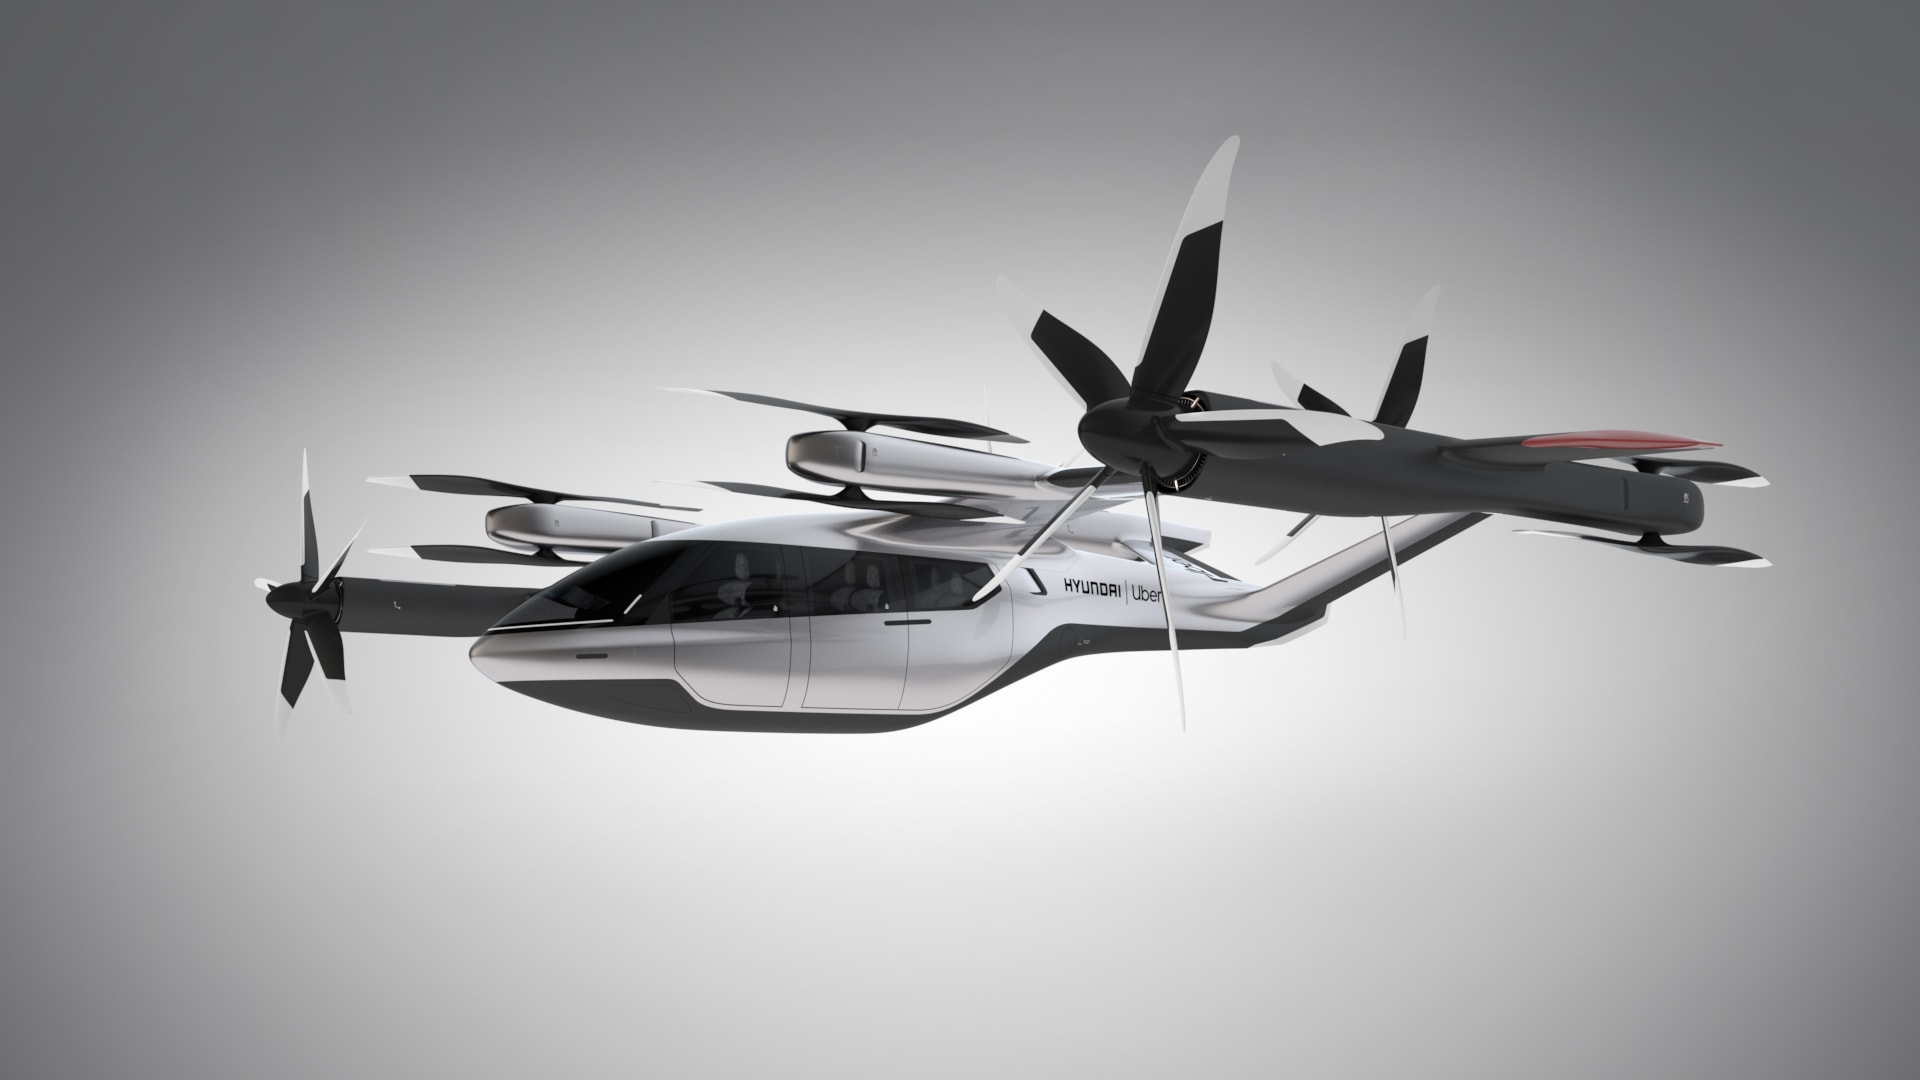 the prototype uber air taxi vehicle